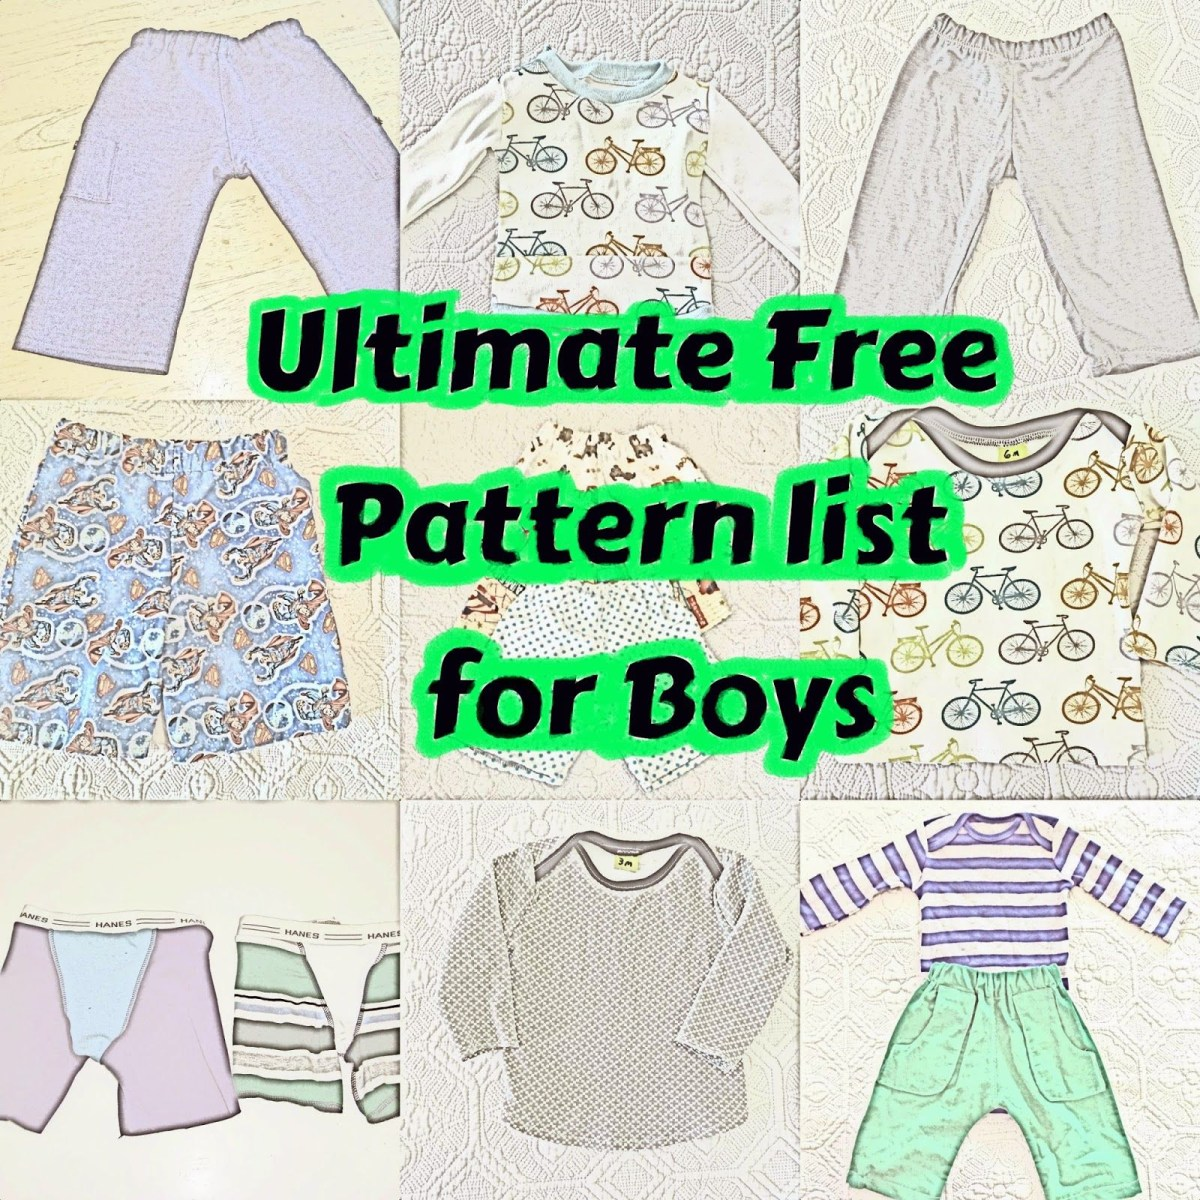 Free Sewing Patterns For Beginners Free Sewing Patterns For Boys Free Boy Patterns Sewing